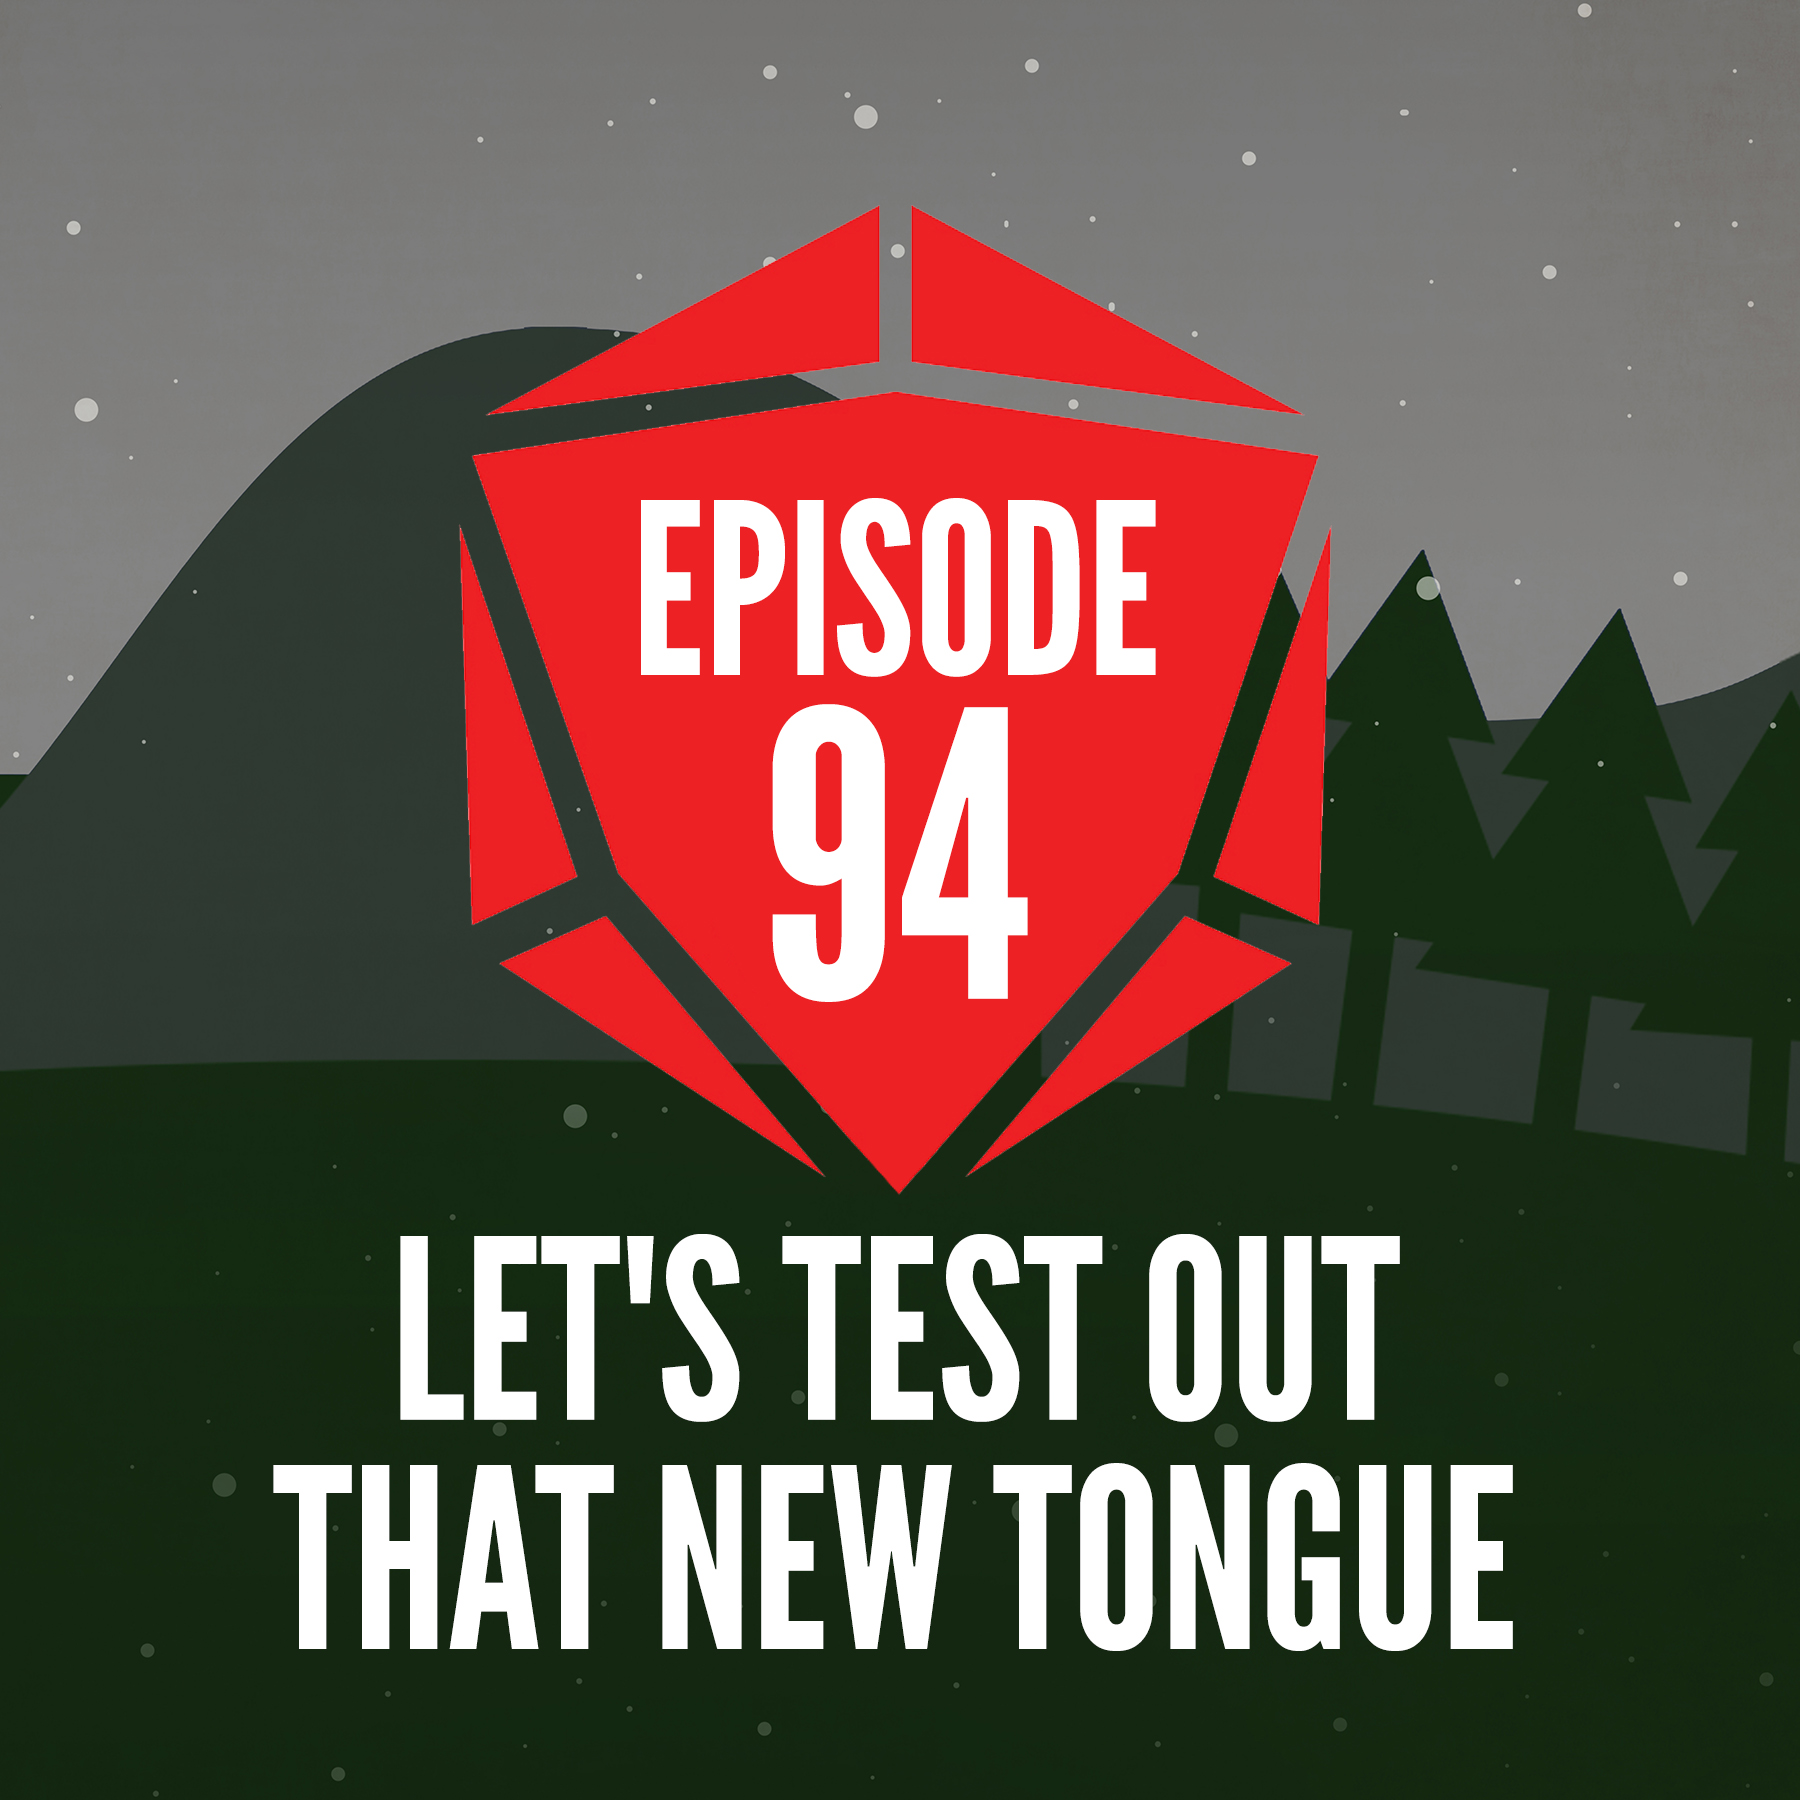 Episode 94: Let's Test Out That New Tongue